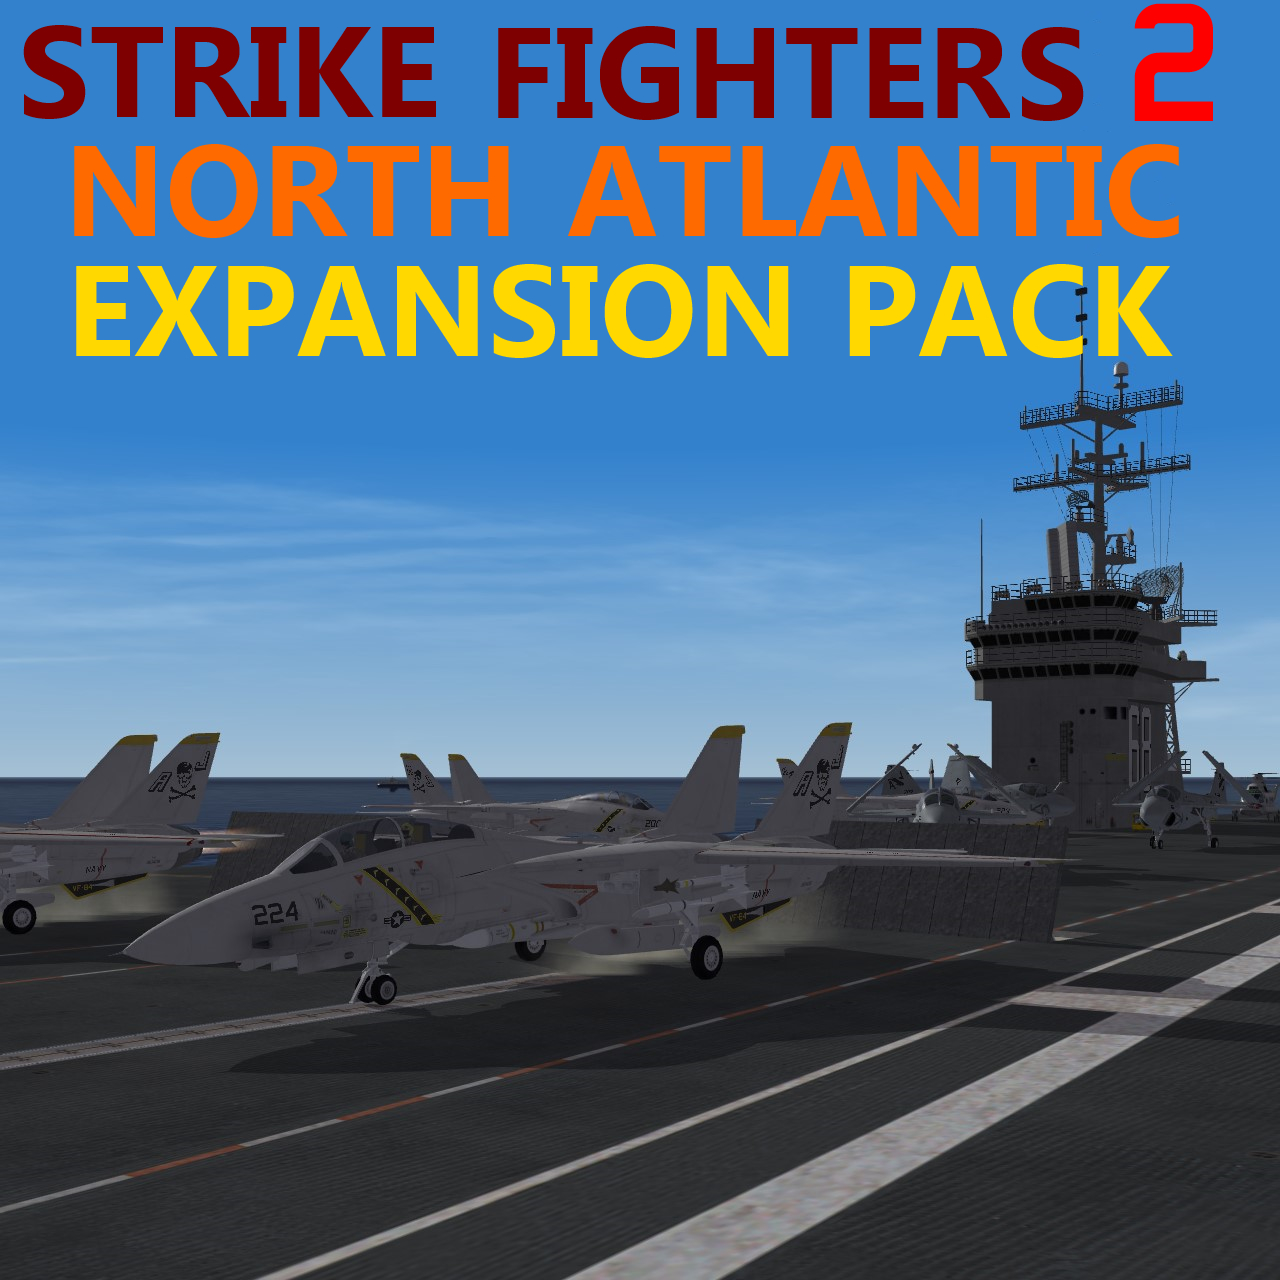 SF2NA Expansion Pack - Part 1 of 3